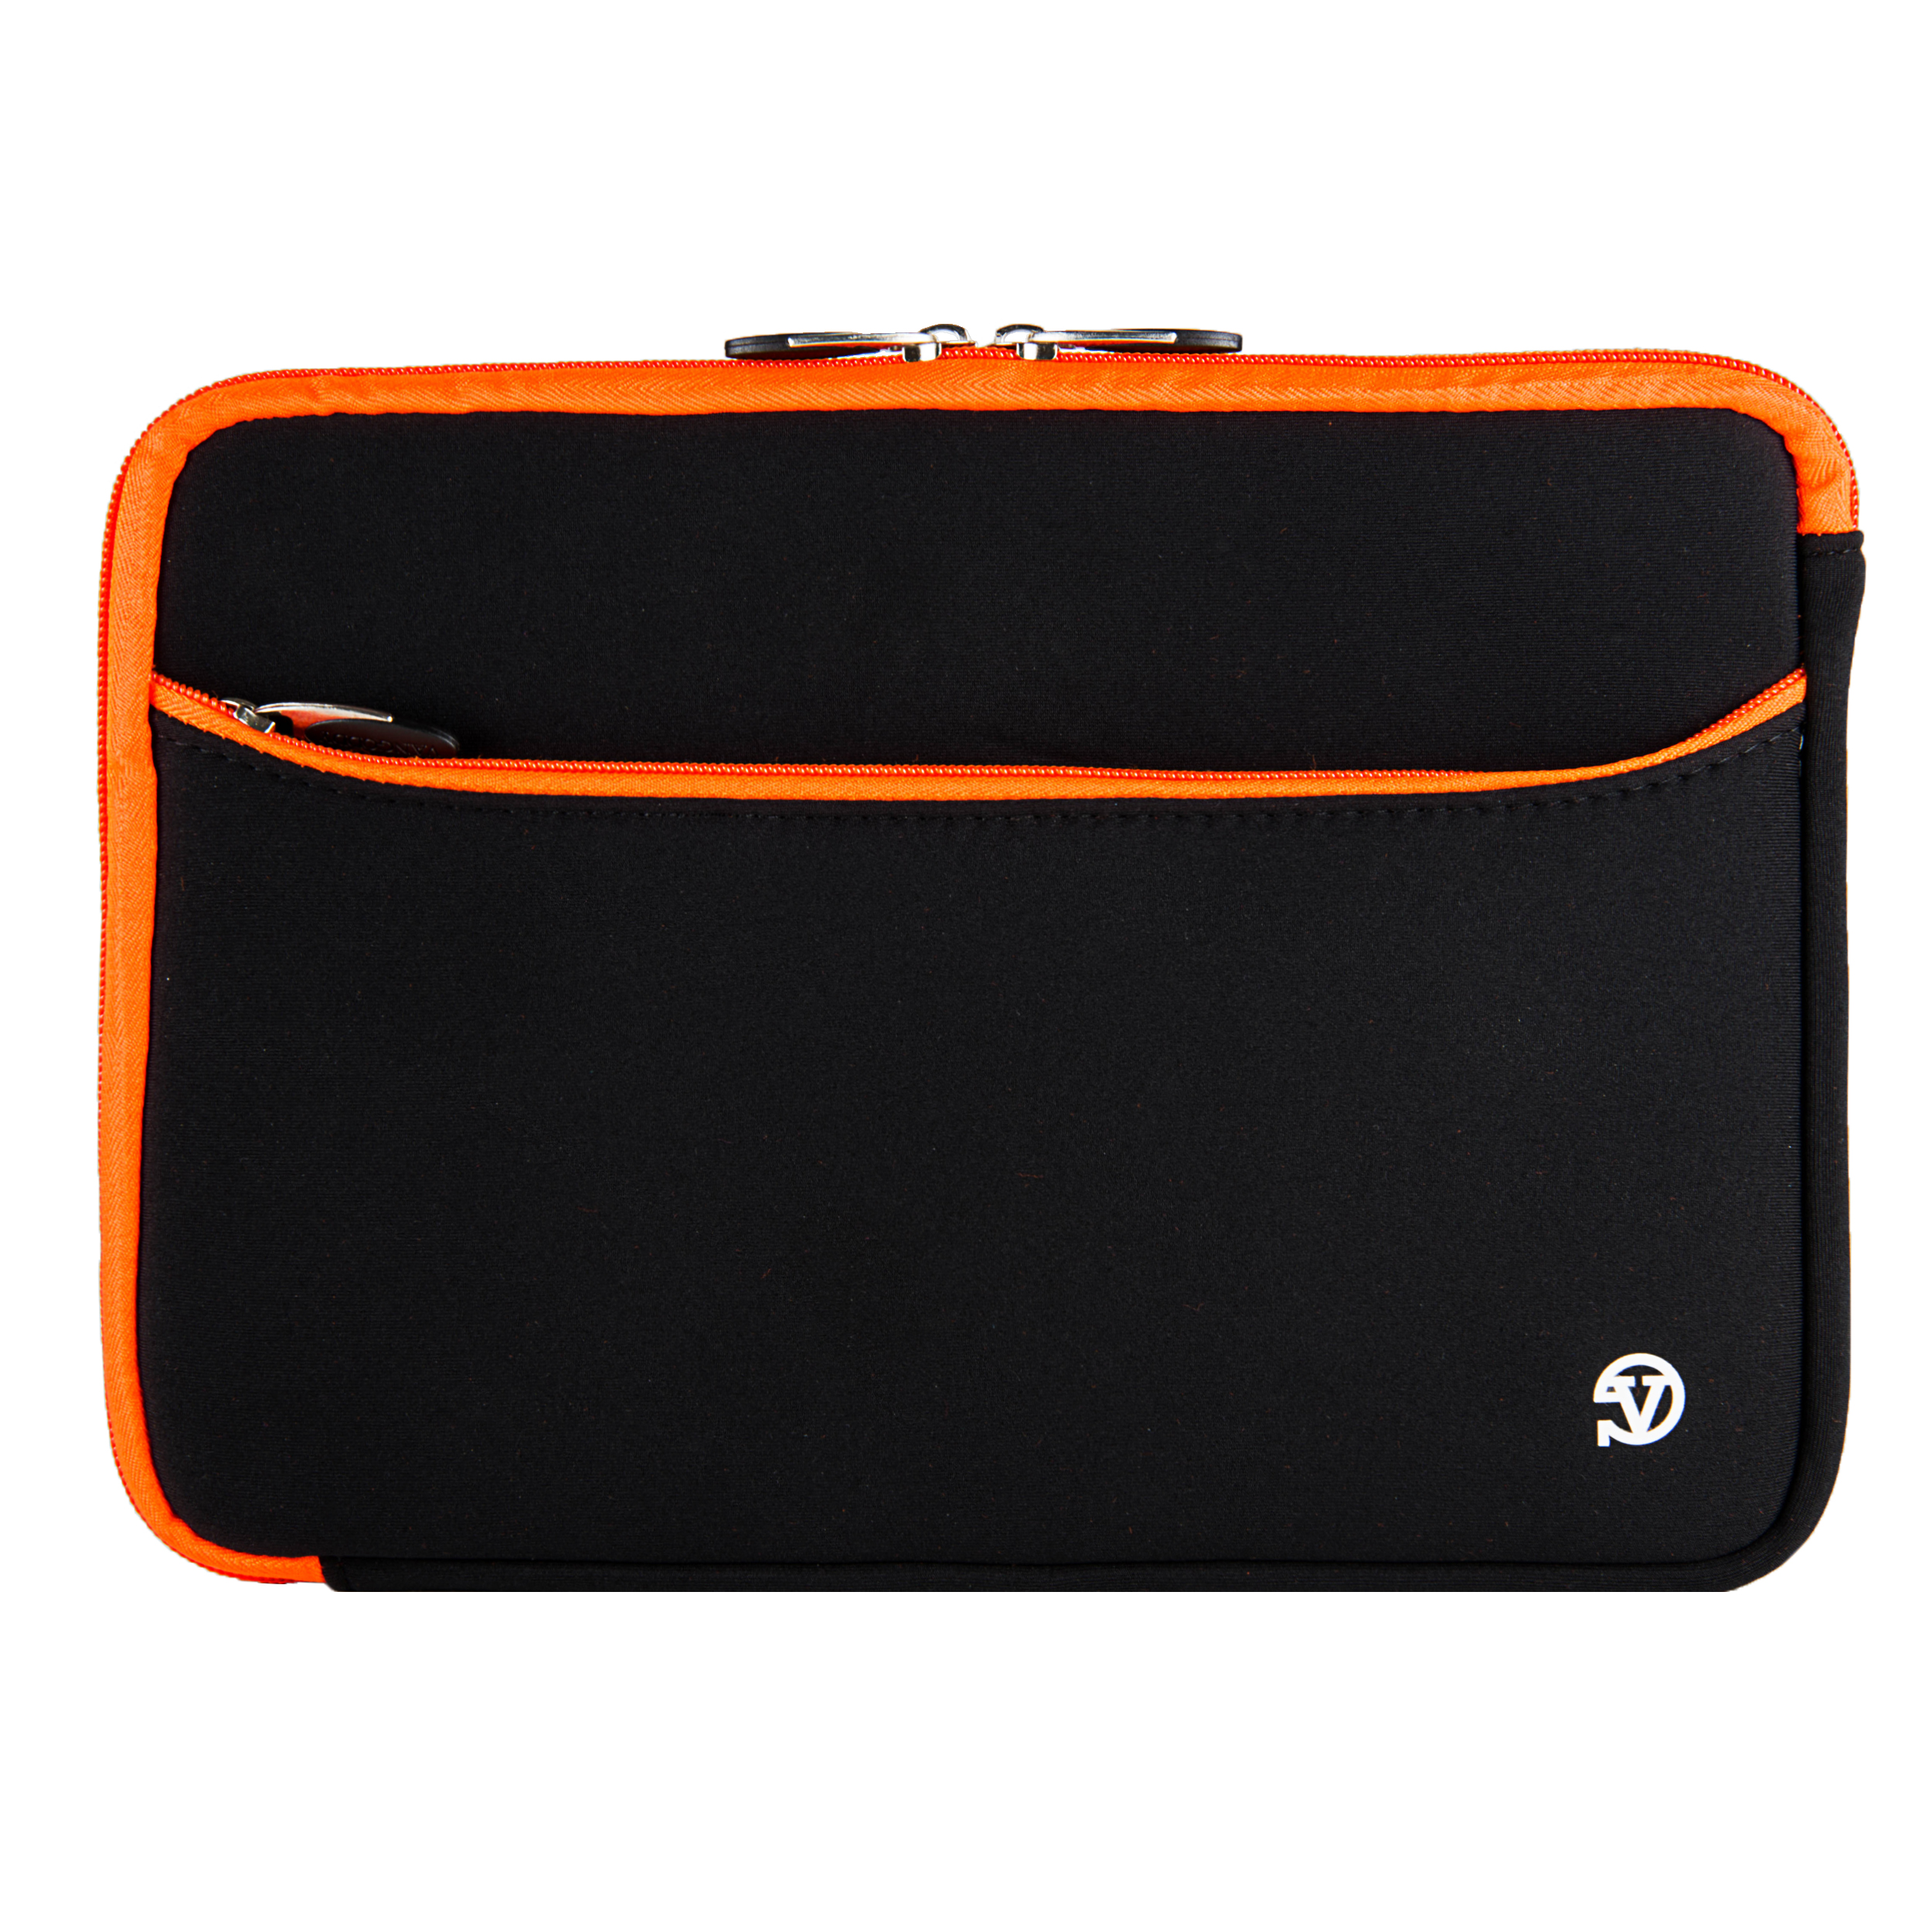 "Neoprene Sleeve 10"" (Black/Orange Trim)"